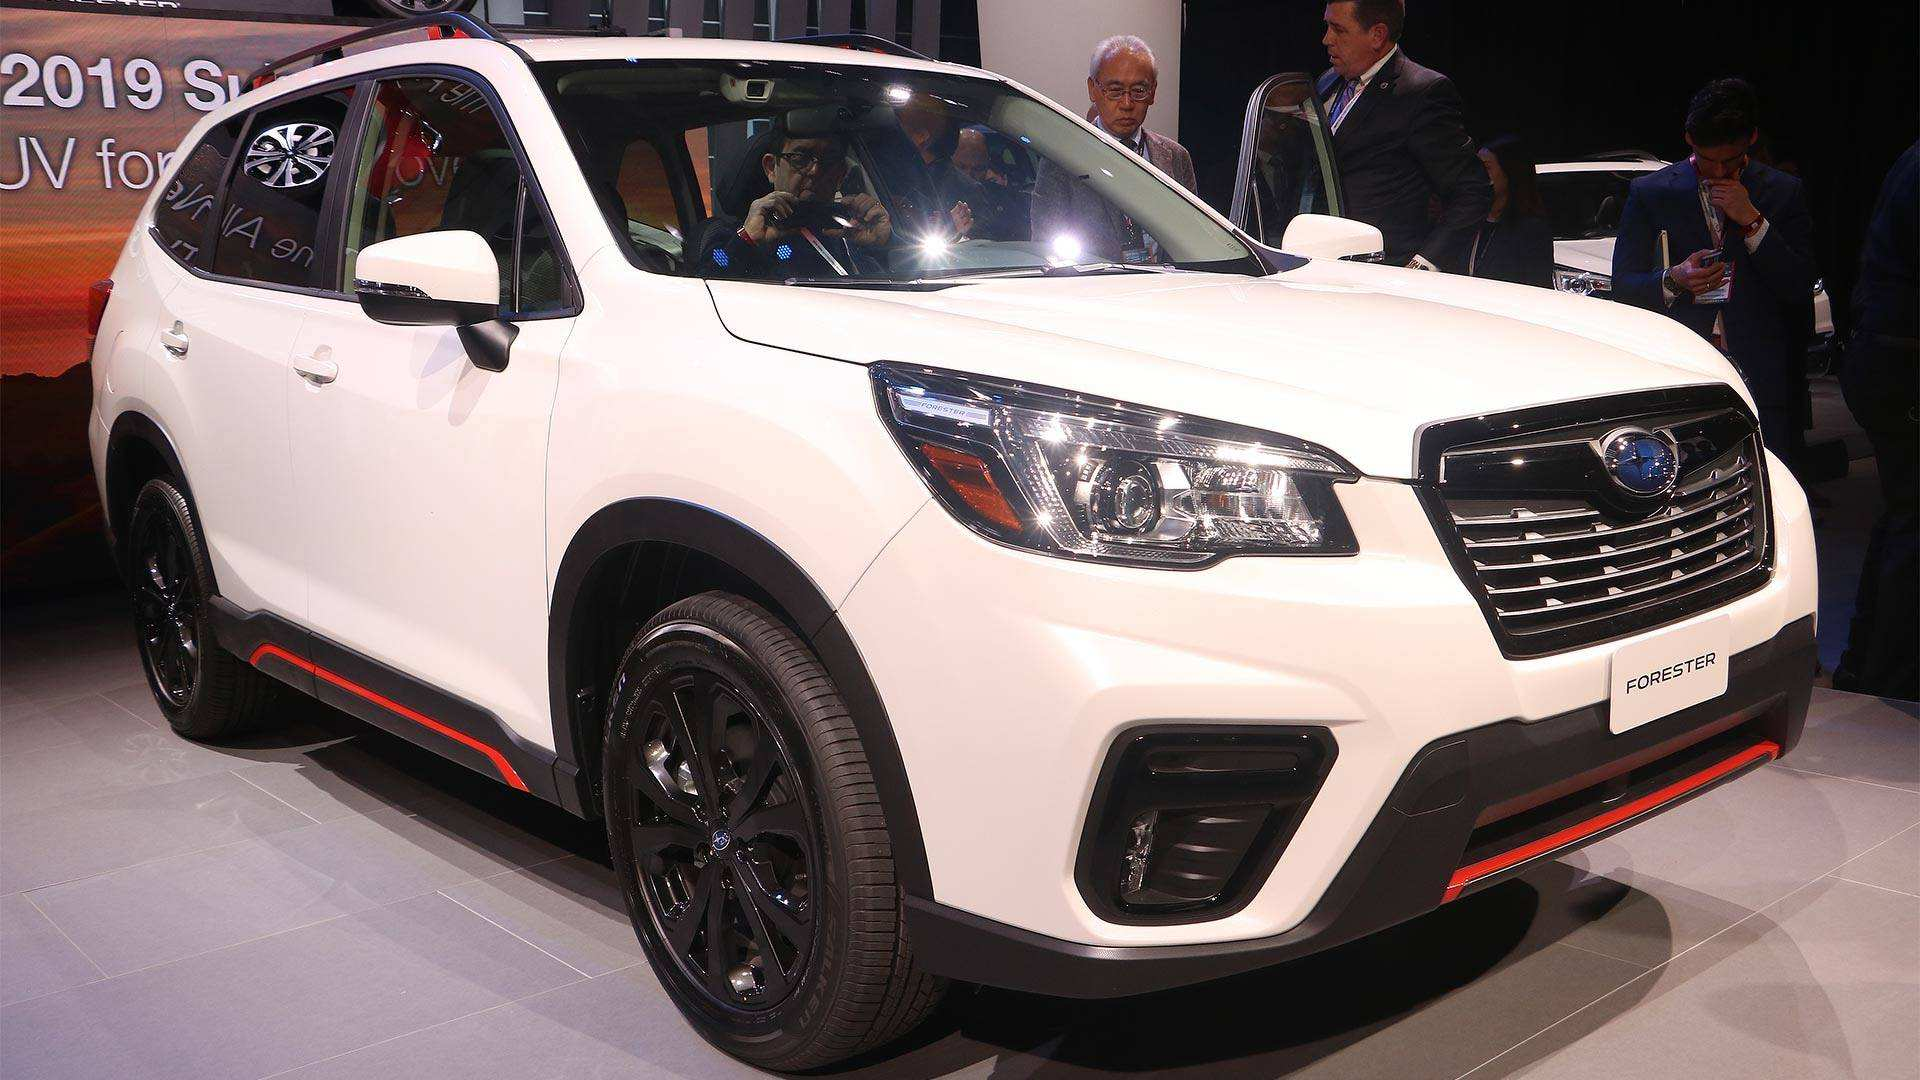 33 Best Subaru Forester 2019 News Wallpaper